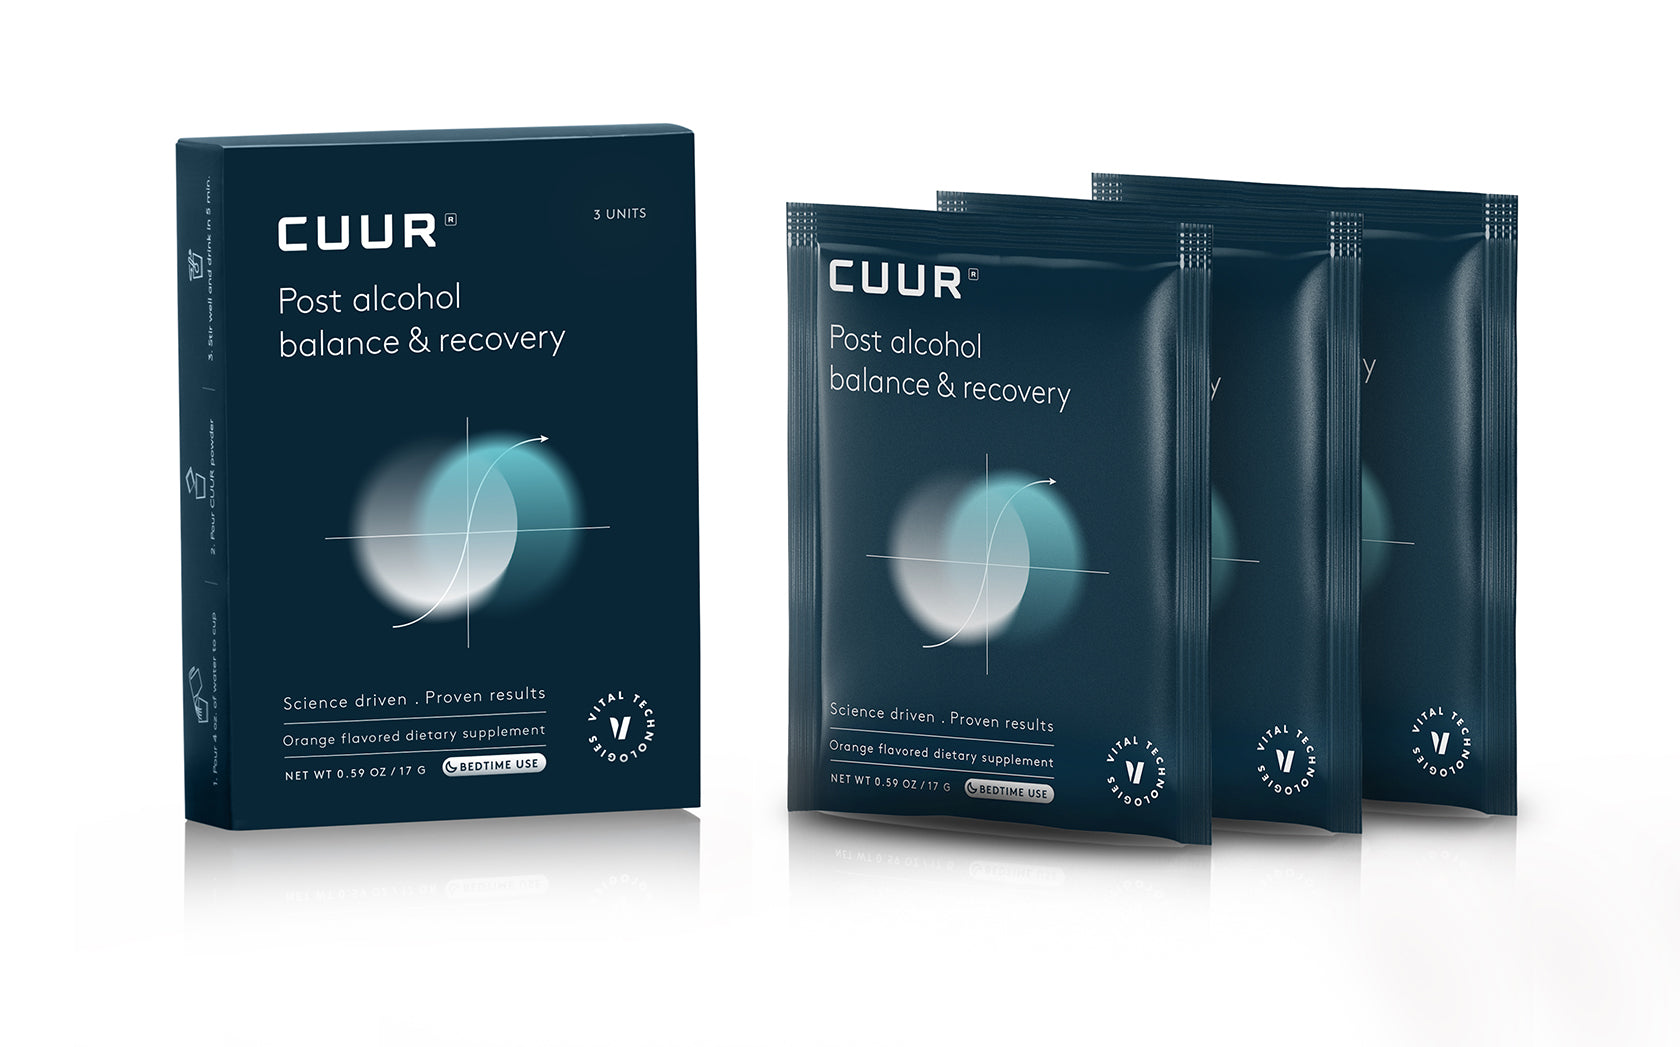 CUUR Post alcohol balance and recovery